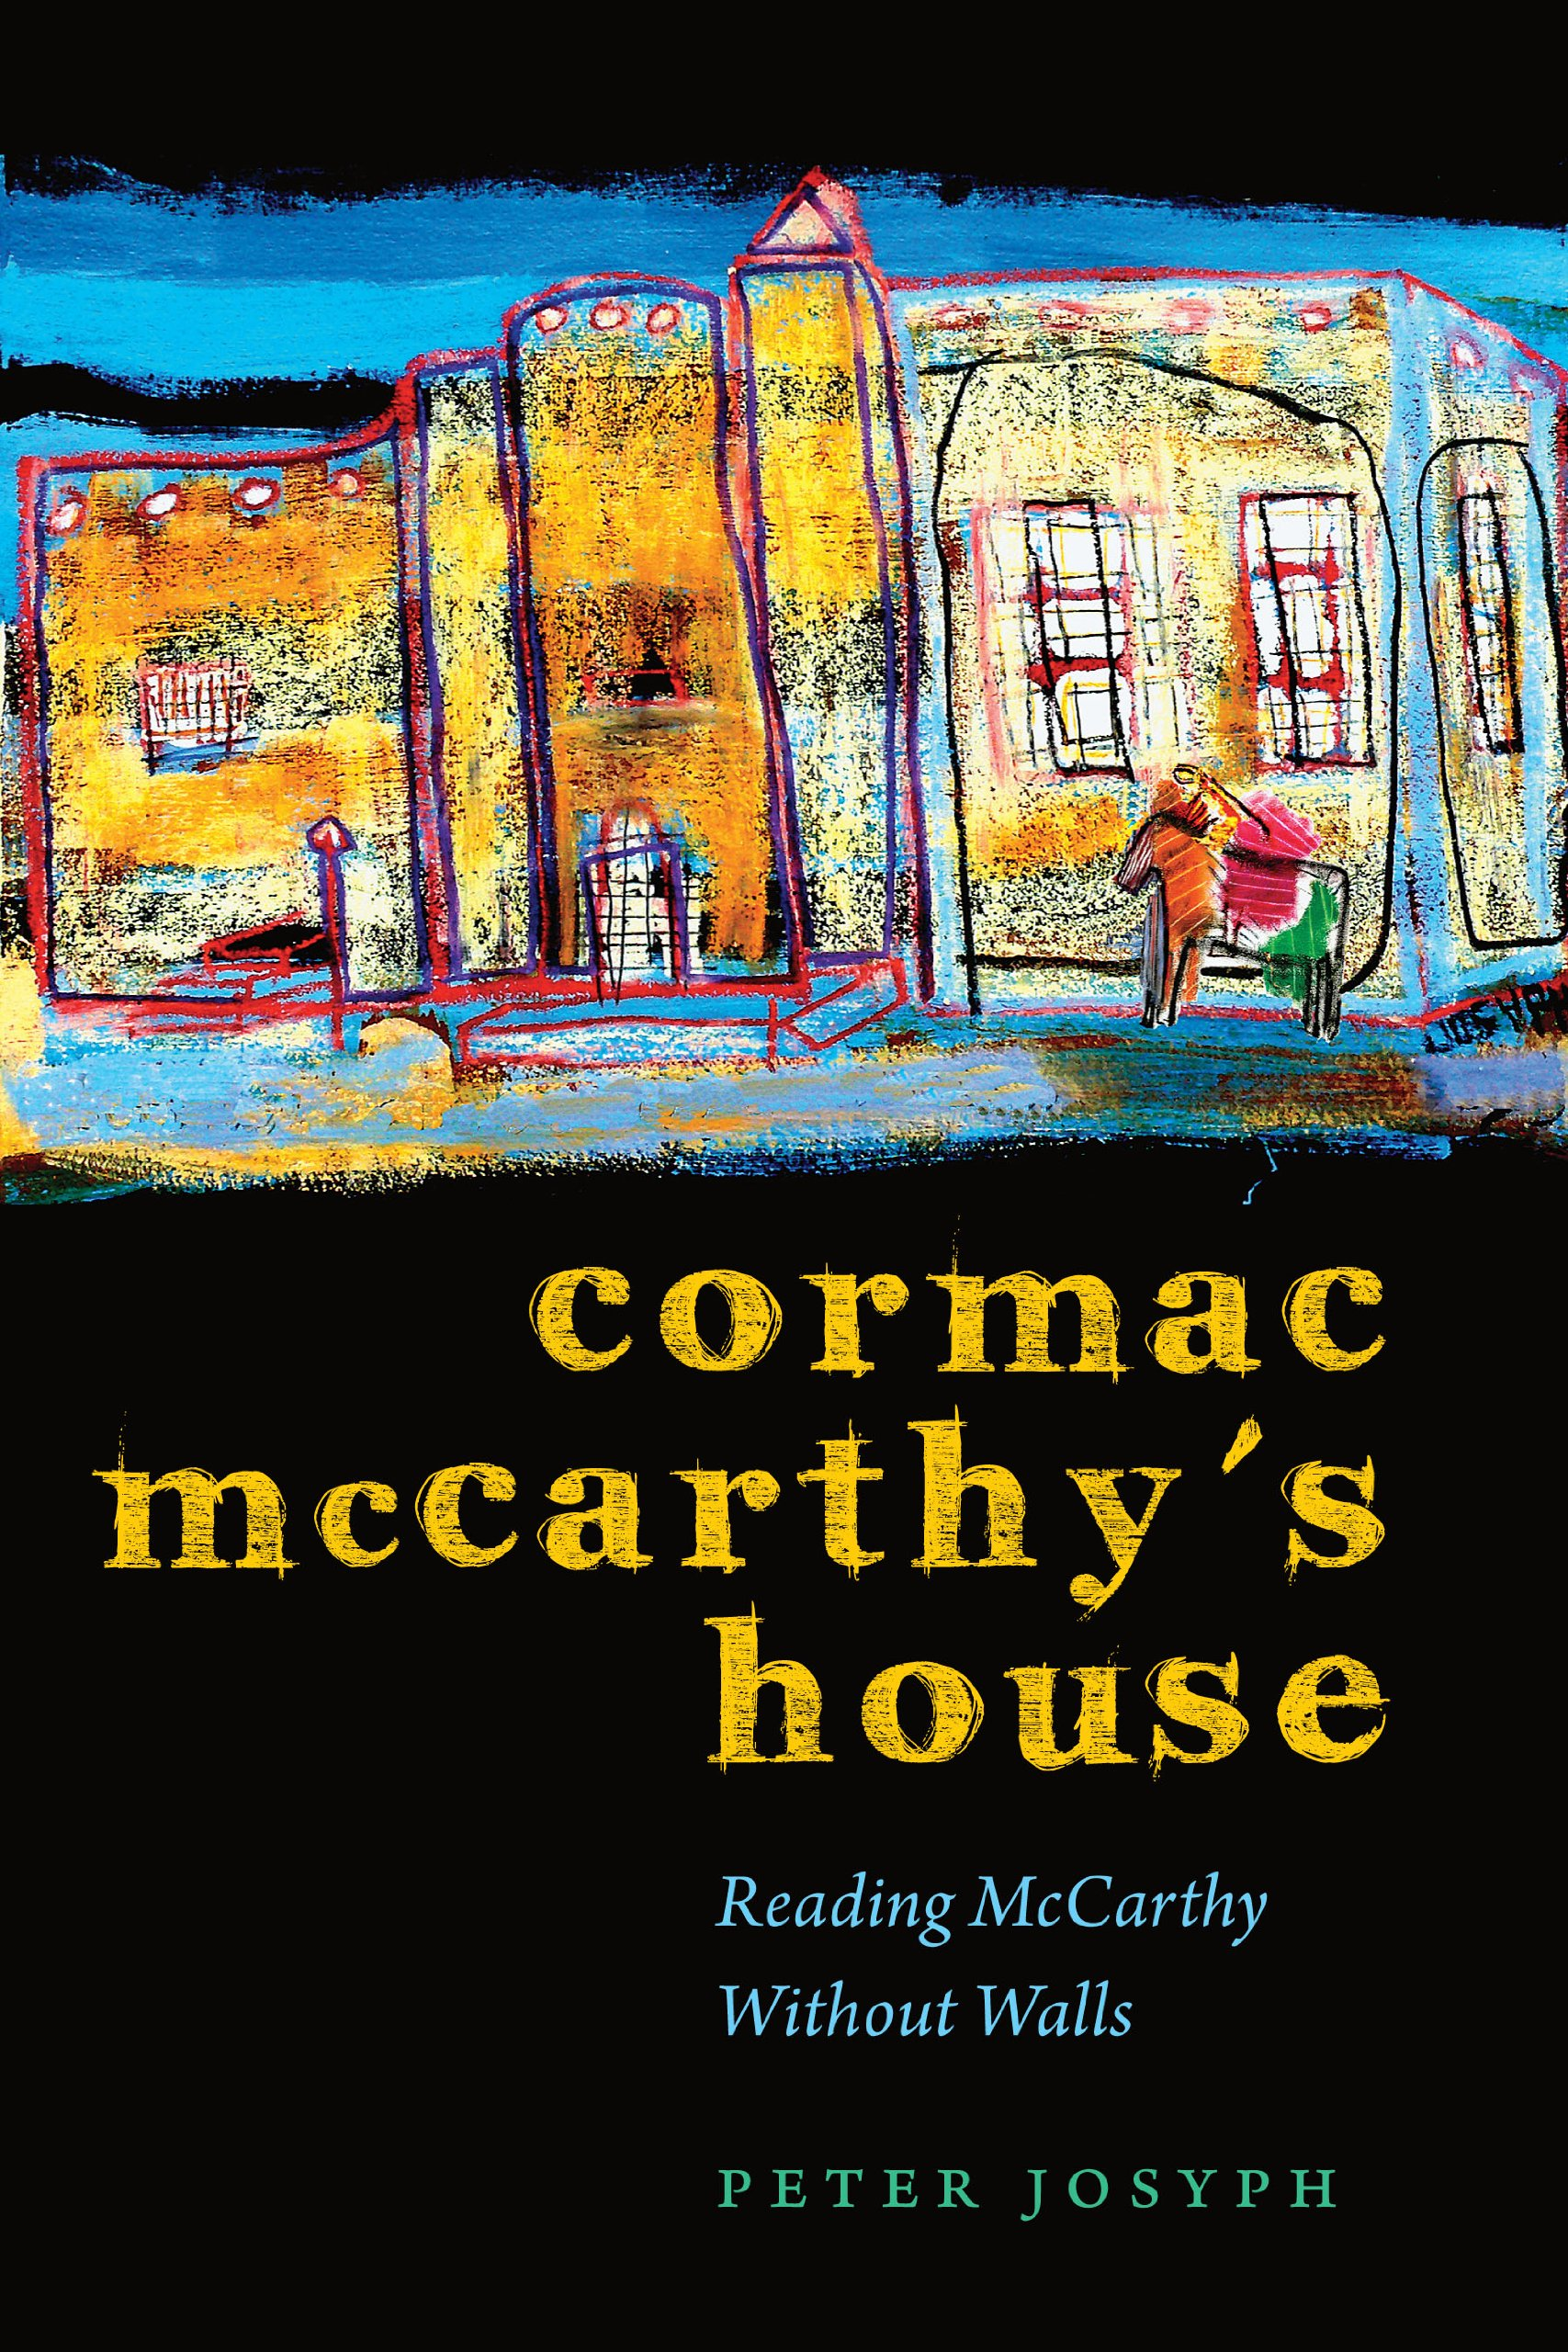 Amazon: Cormac Mccarthy's House: Reading Mccarthy Without Walls  (southwestern Writers Collection) (9780292744295): Peter Josyph: Books